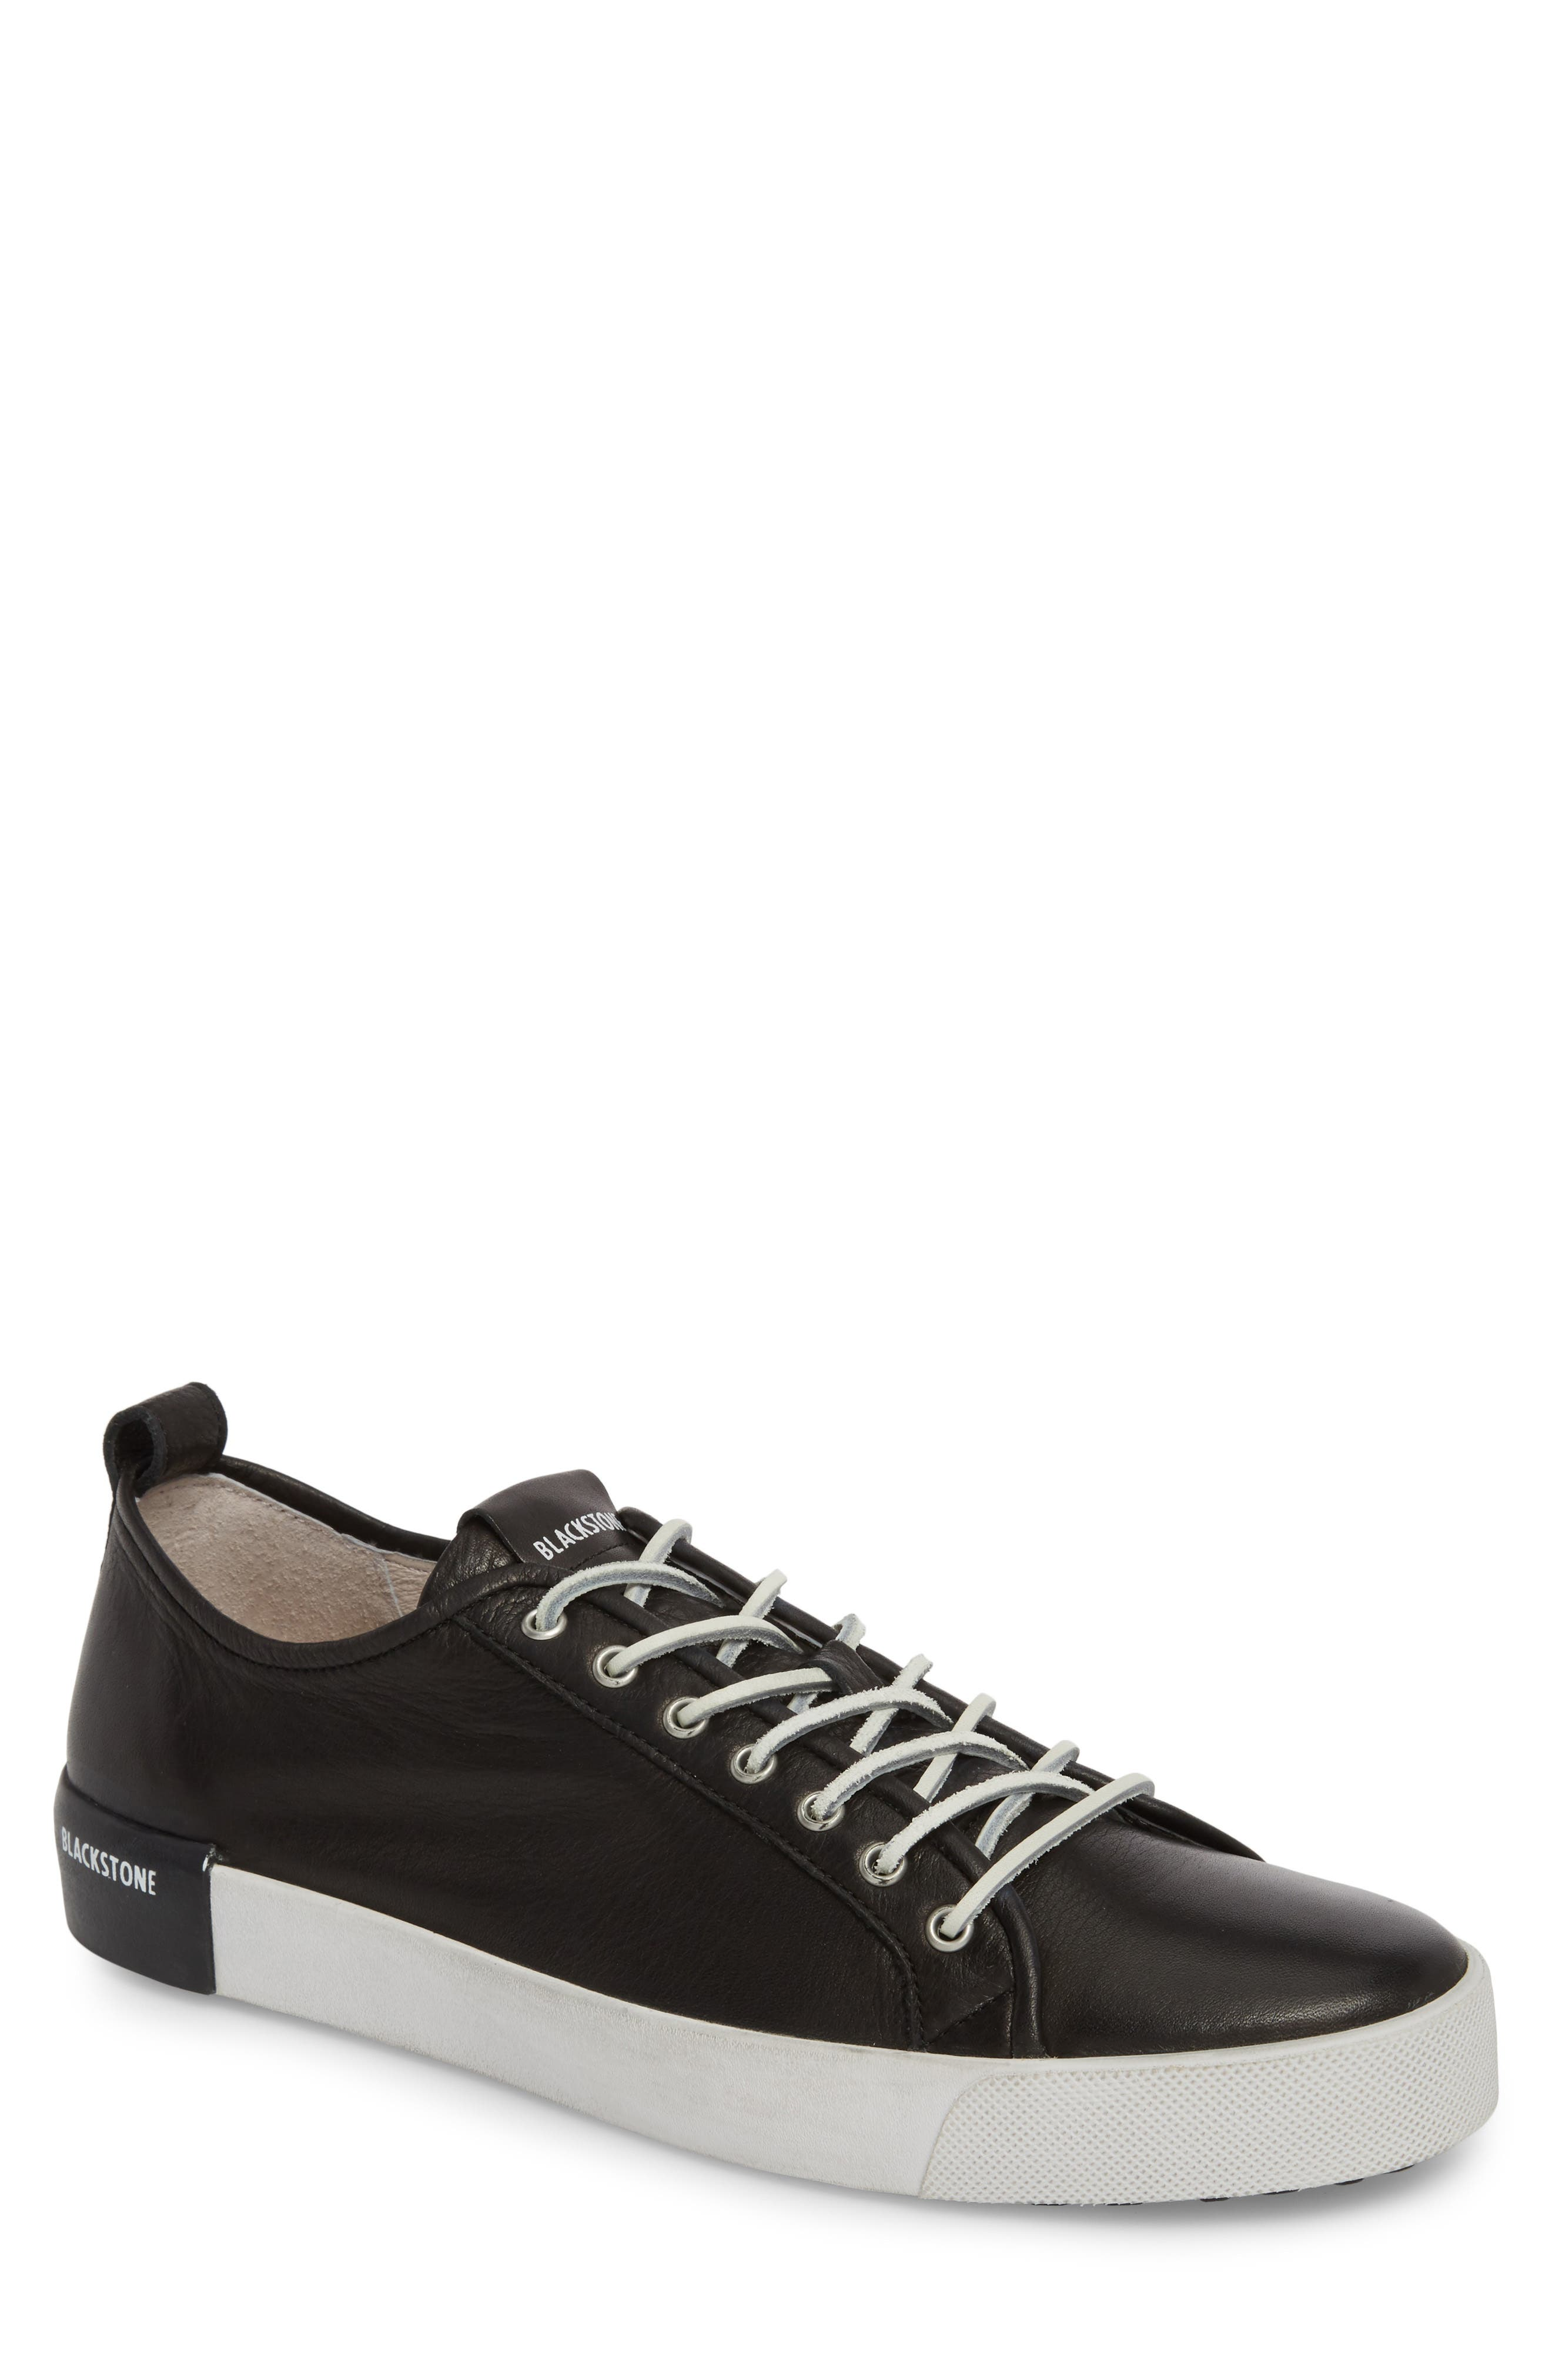 PM66 Low Top Sneaker,                             Main thumbnail 1, color,                             BLACK LEATHER